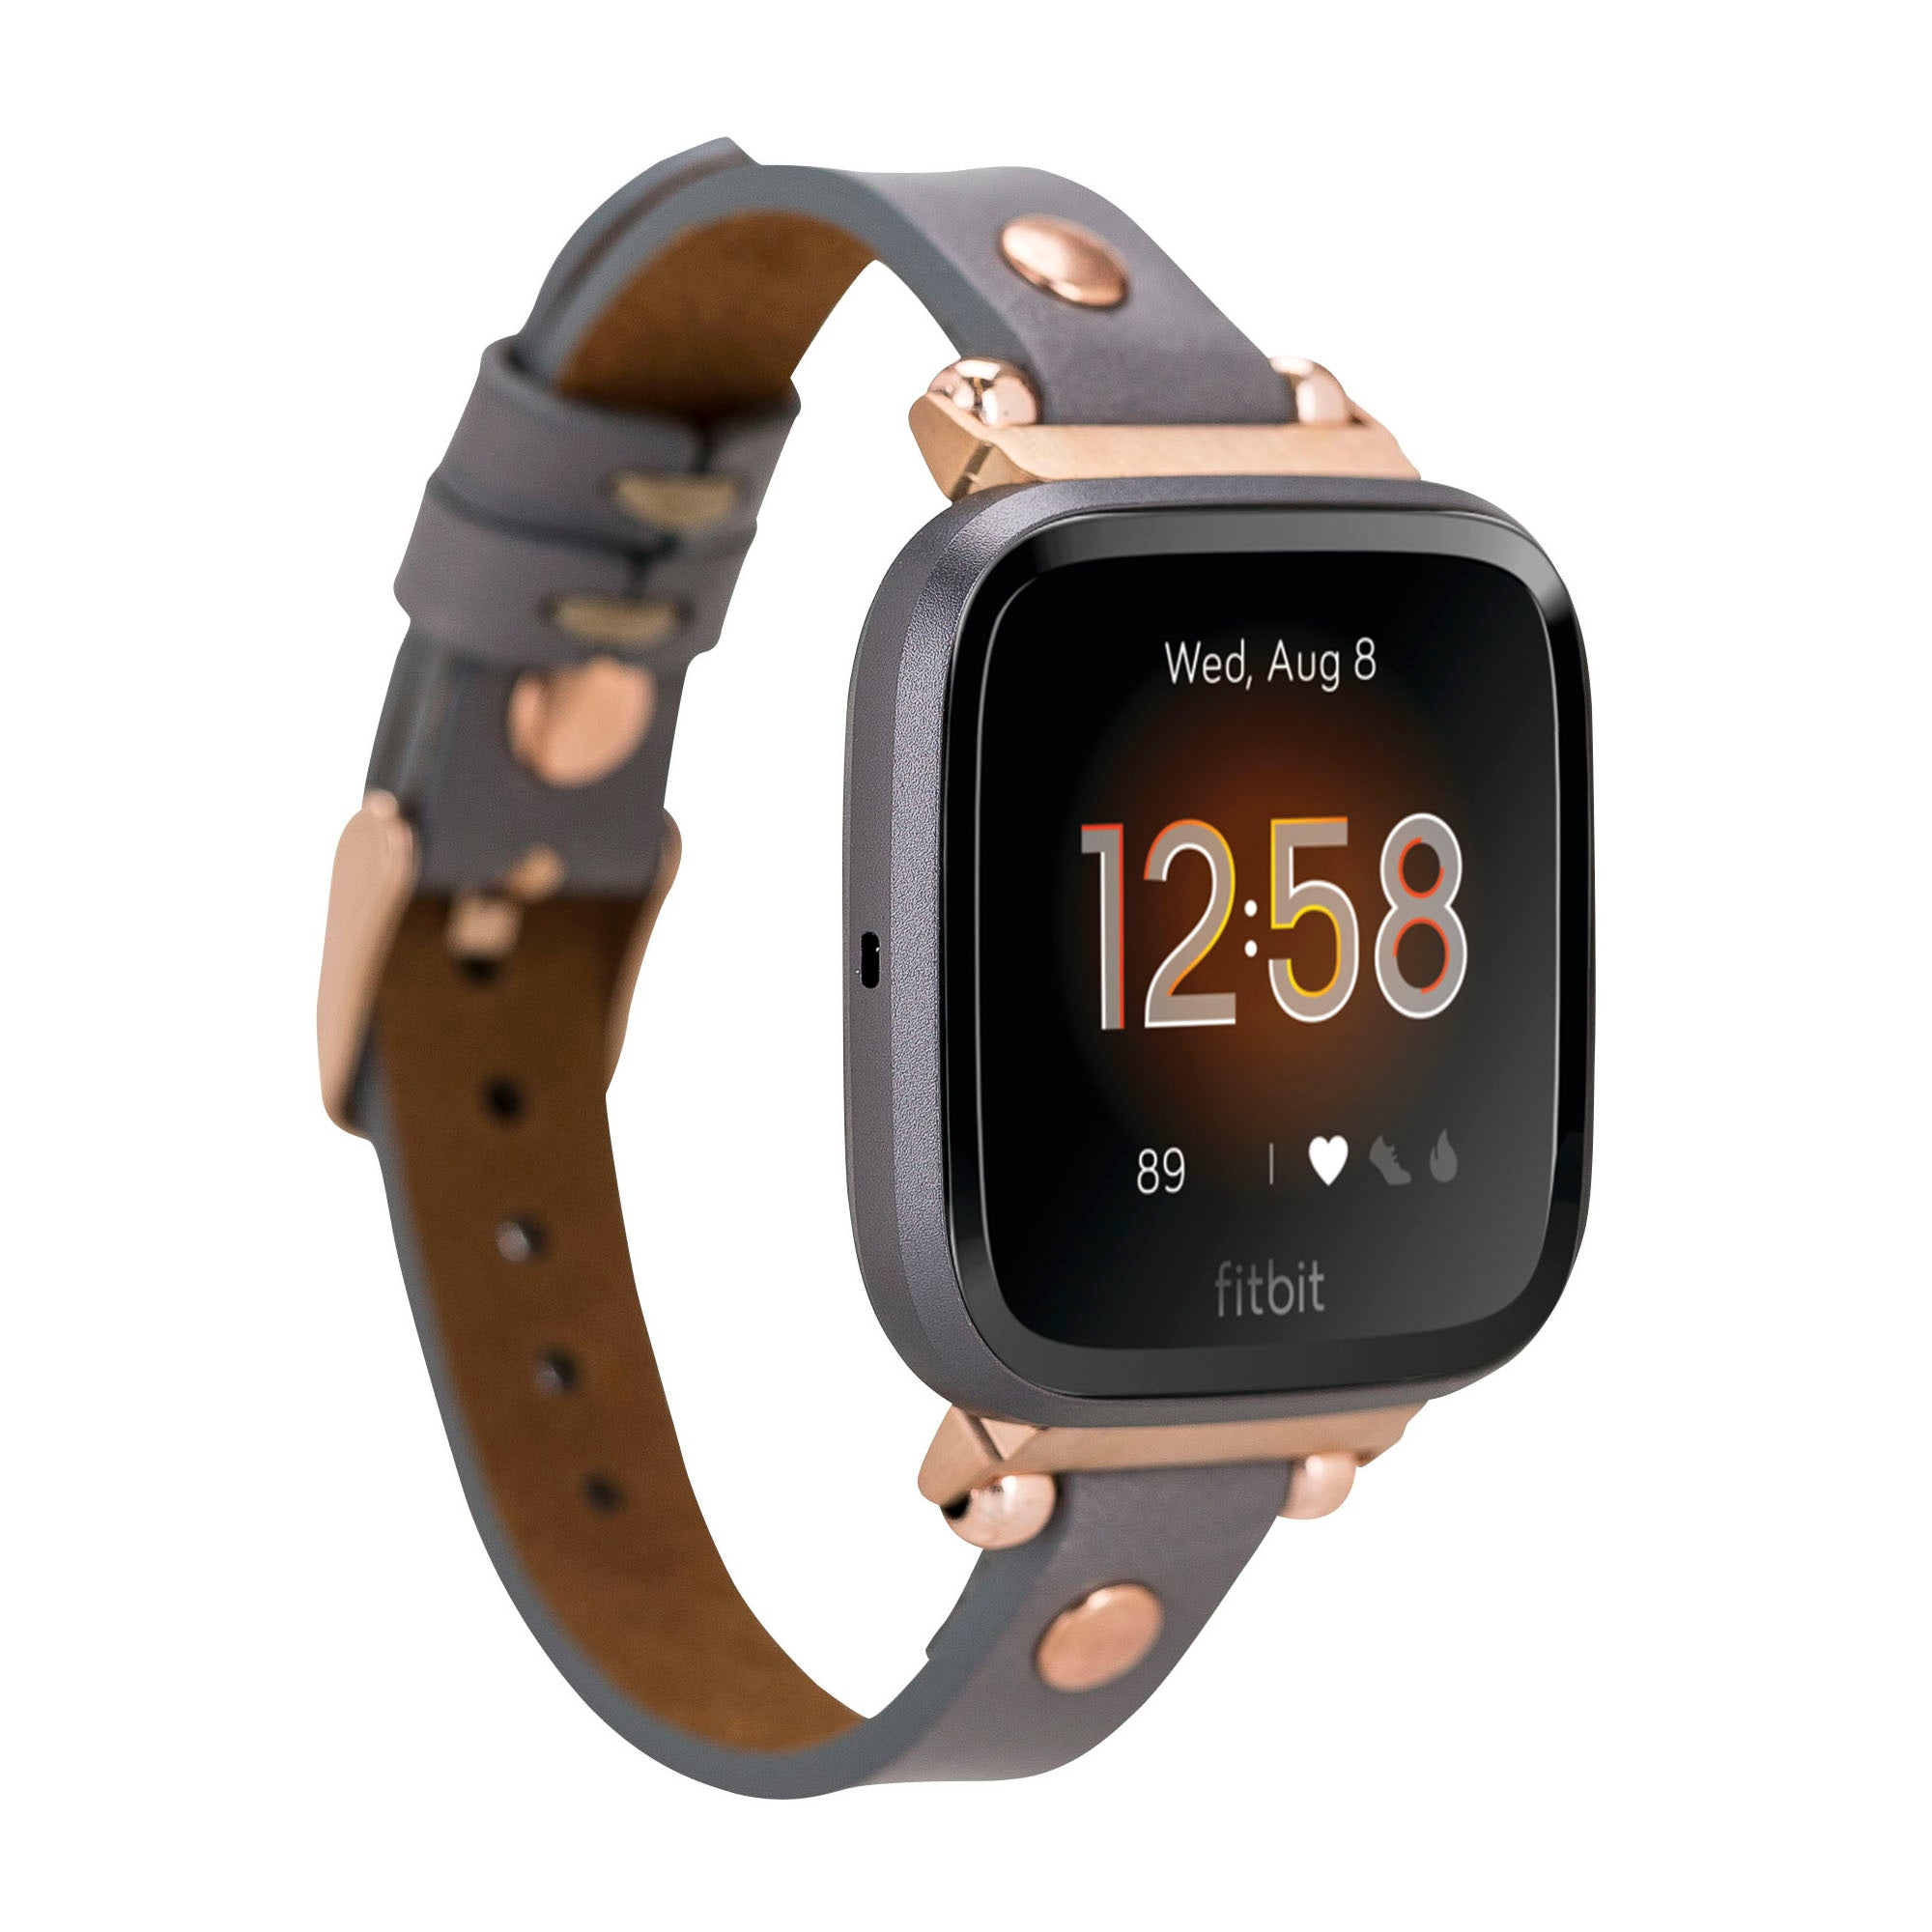 Ferro Strap - Full Grain Leather Band for Fitbit Versa 2 / Fitbit Versa 1 / Fitbit Versa Lite - GRAY - saracleather